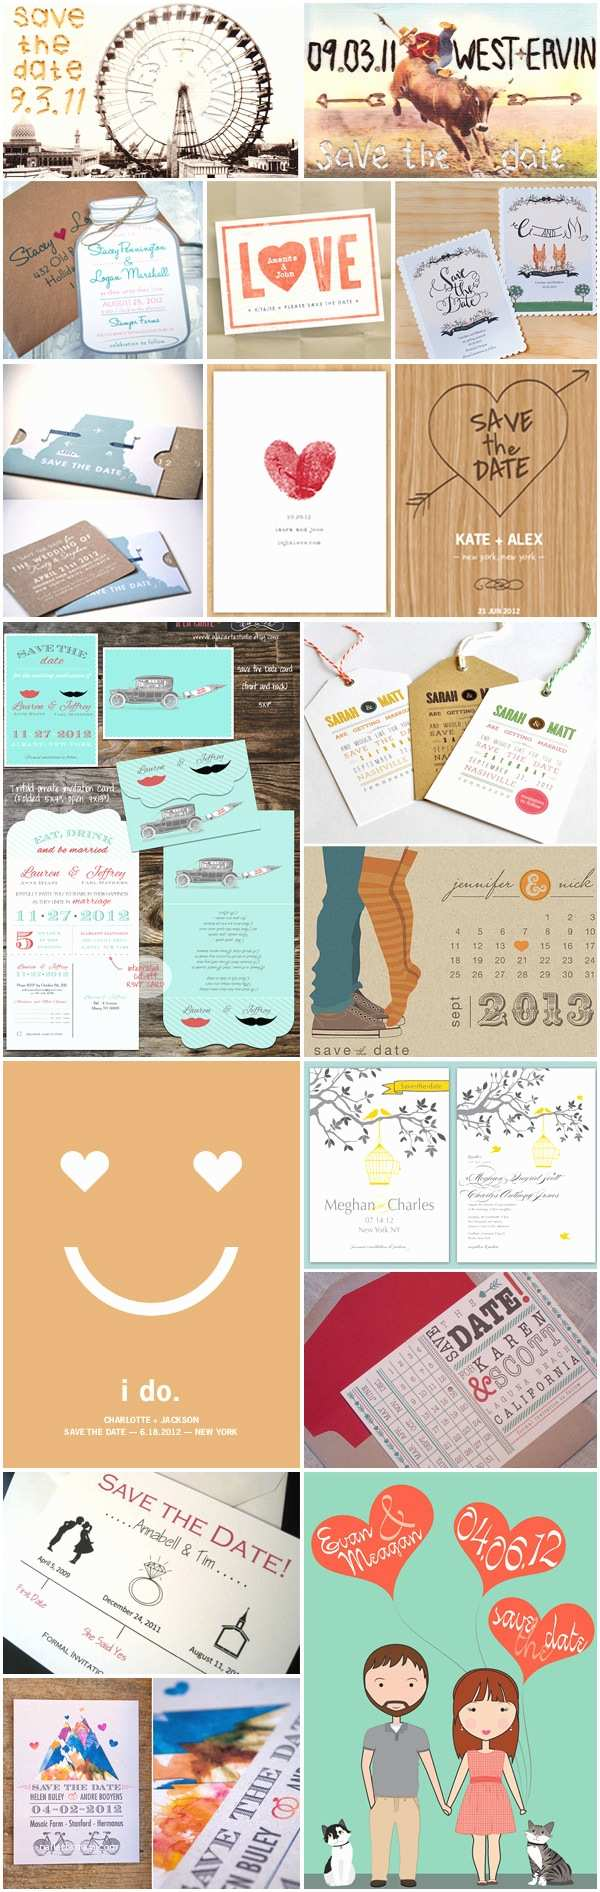 Save the Date Wedding Invitations Graphics Save the Dates Wedding Invitation Ideas